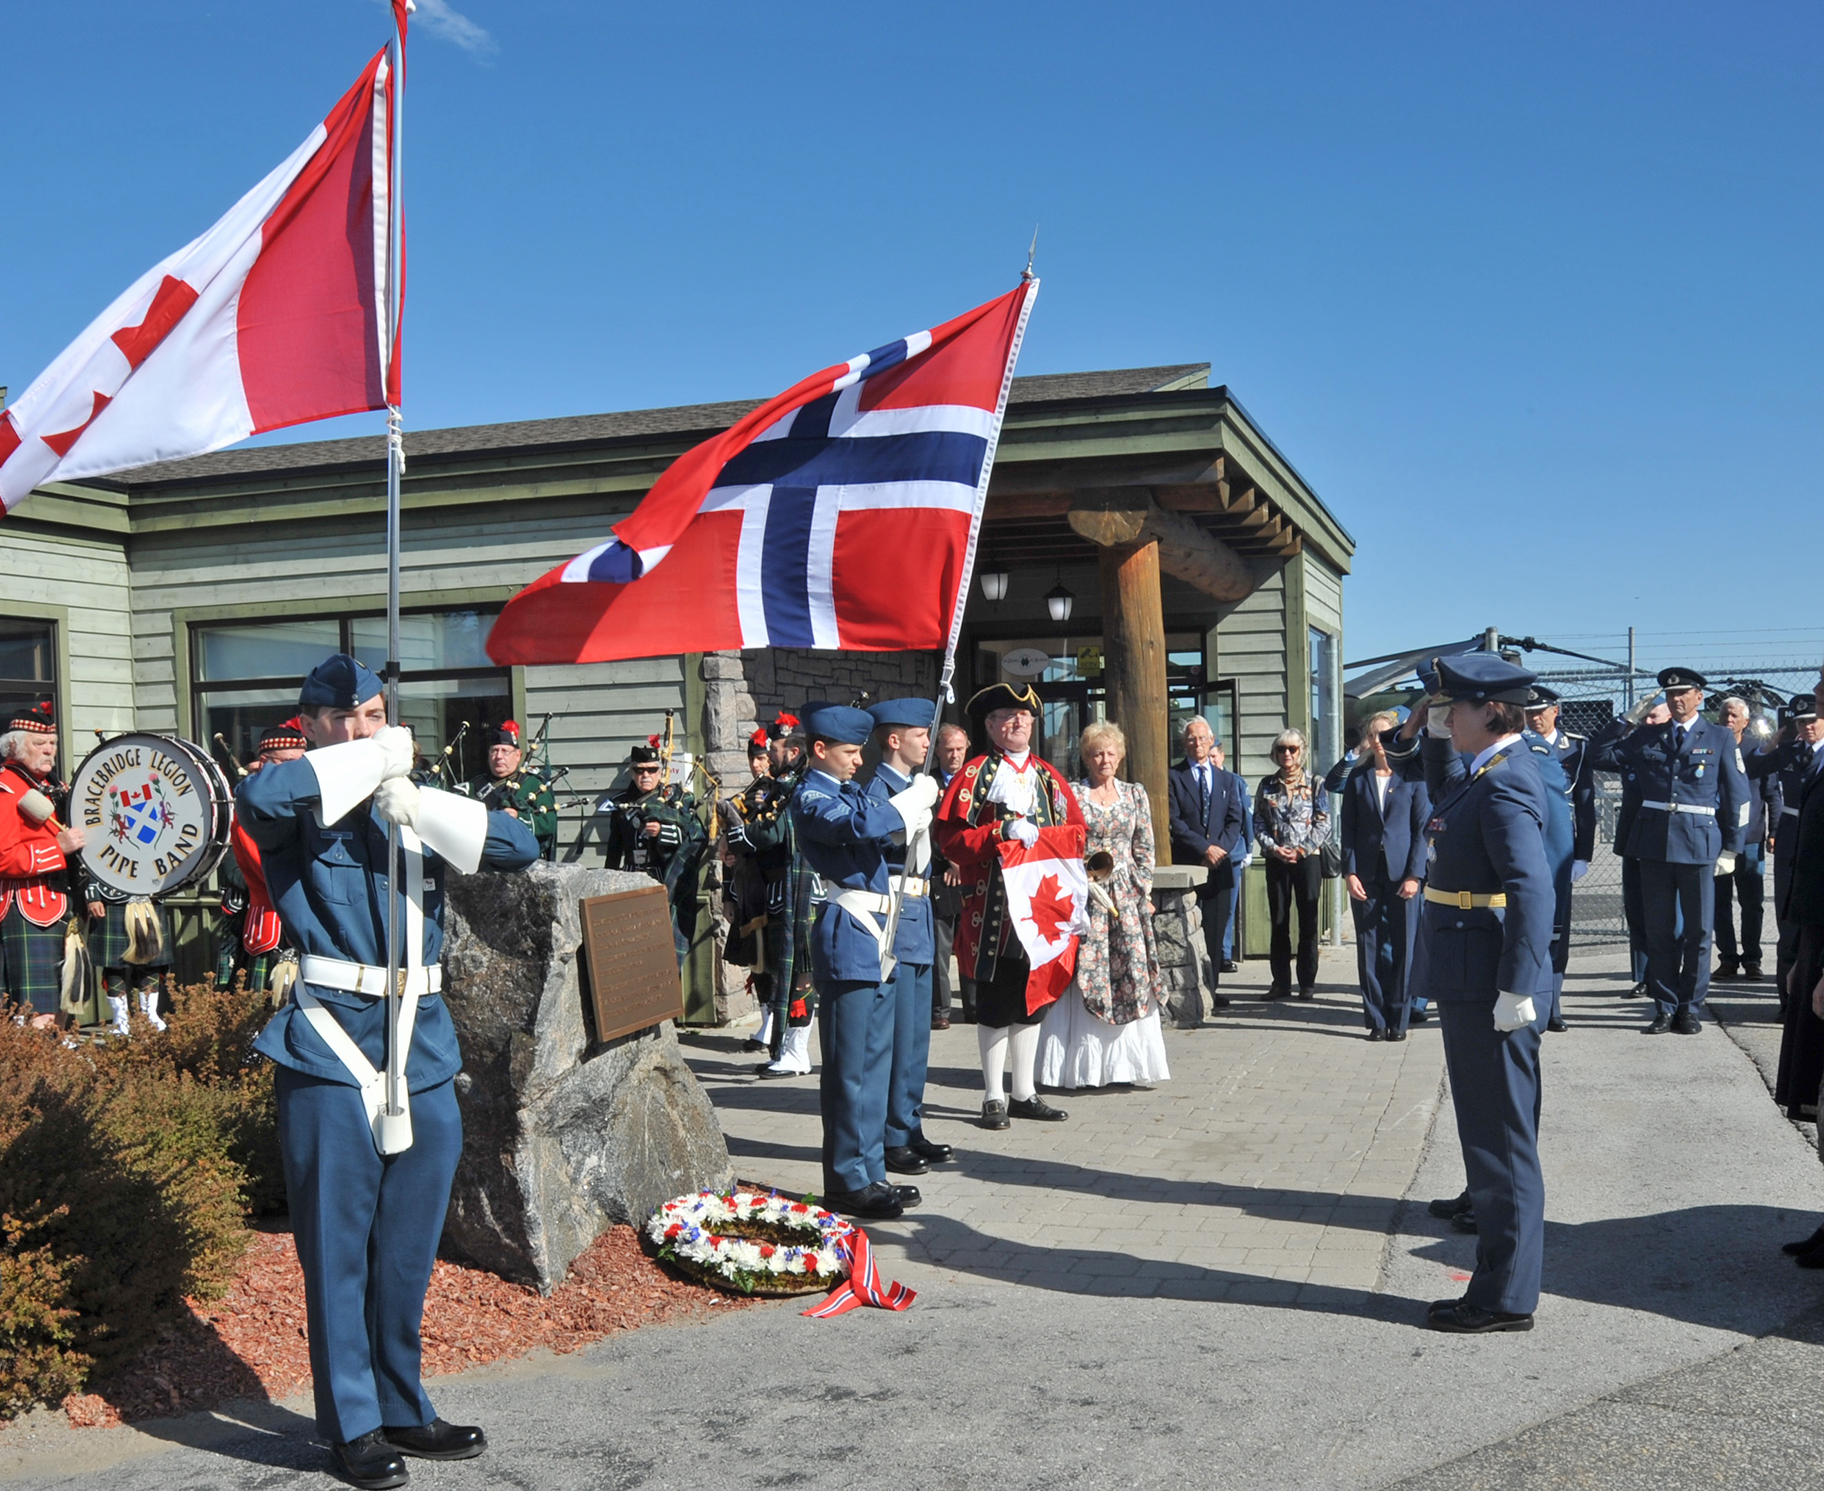 On October 11, 2019, a wreath-laying ceremony is held at Muskoka Airport as part of celebrations marking the 75th anniversary of the Royal Norwegian Air Force. PHOTO: Lieutenant Nora Amrane